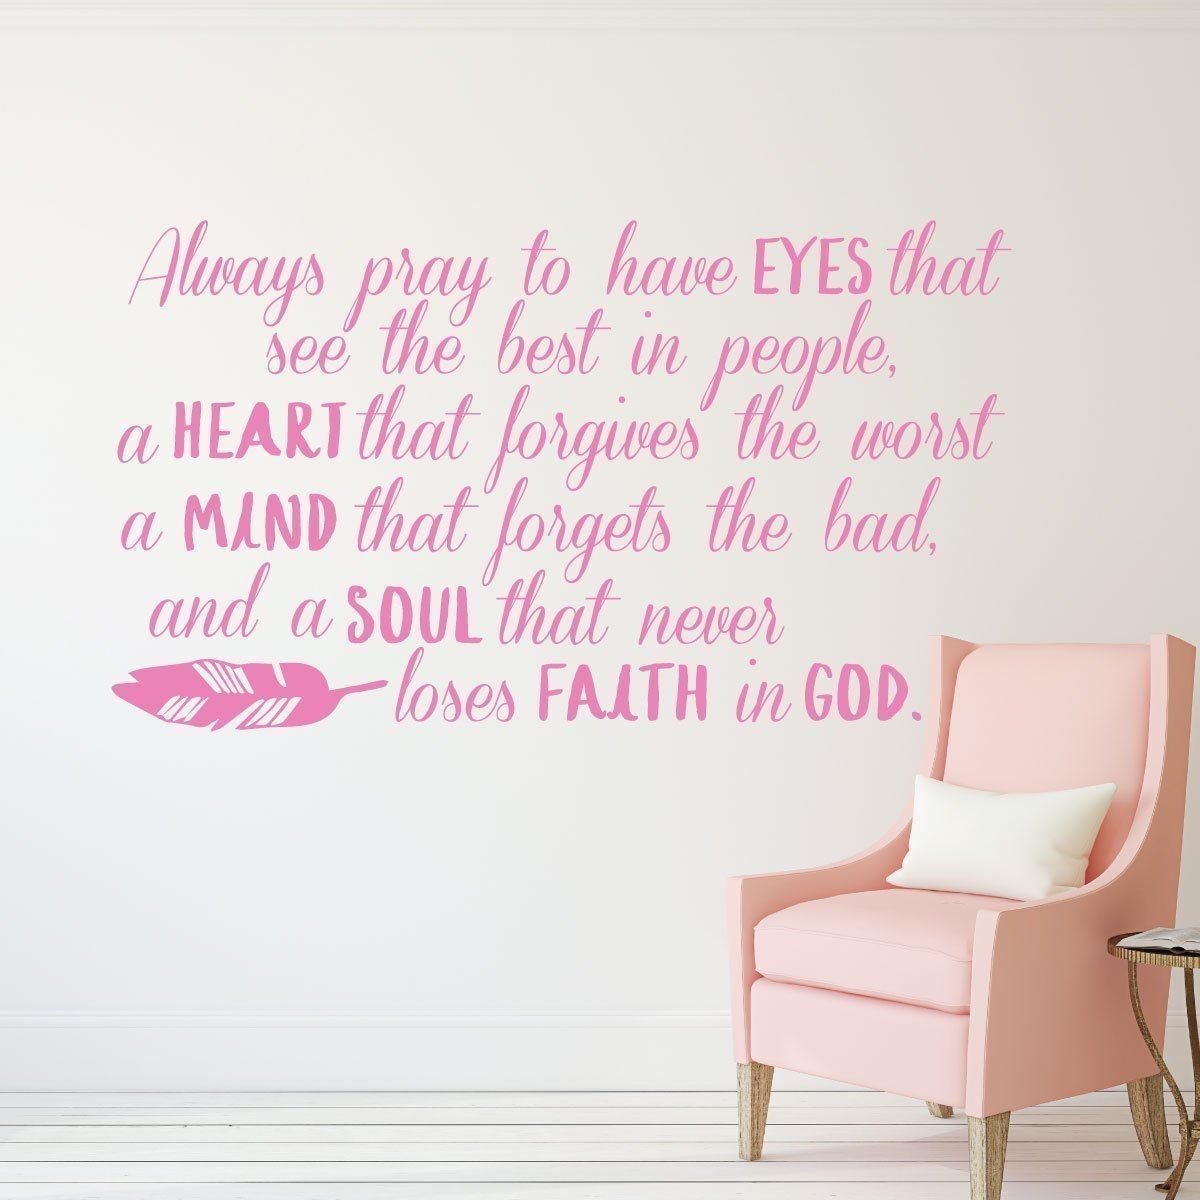 Prayer Wall Decor - Always Pray To Have EYES That See The Best In People - Removable Vinyl Wall Art for Teen Girls Bedroom, Hallway